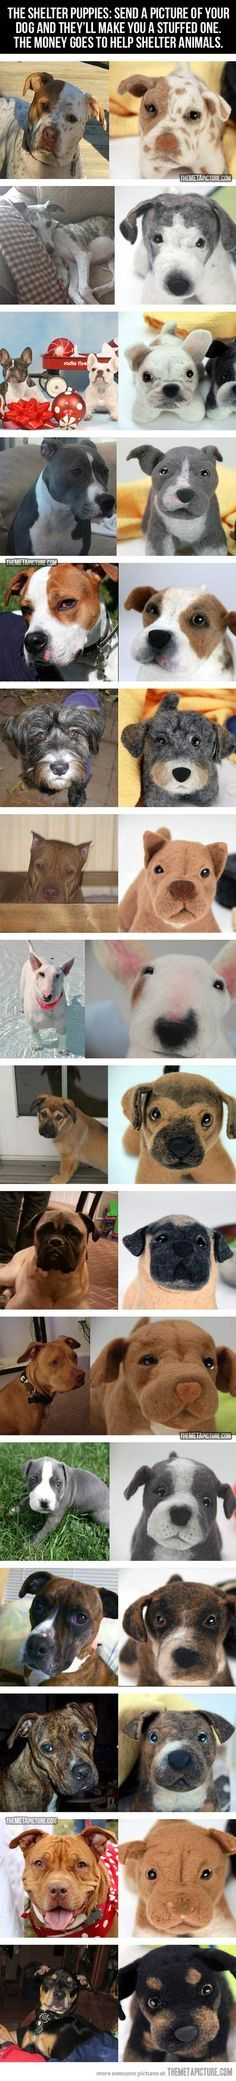 The Shelter Puppies: Send a picture of your dog and they'll make you a stuffed one. The money goes to help shelter animals!: Stuffed Animal Dog, Dog Stuffed Animal, Help Shelter, Animal Shelter, Puppy Gift